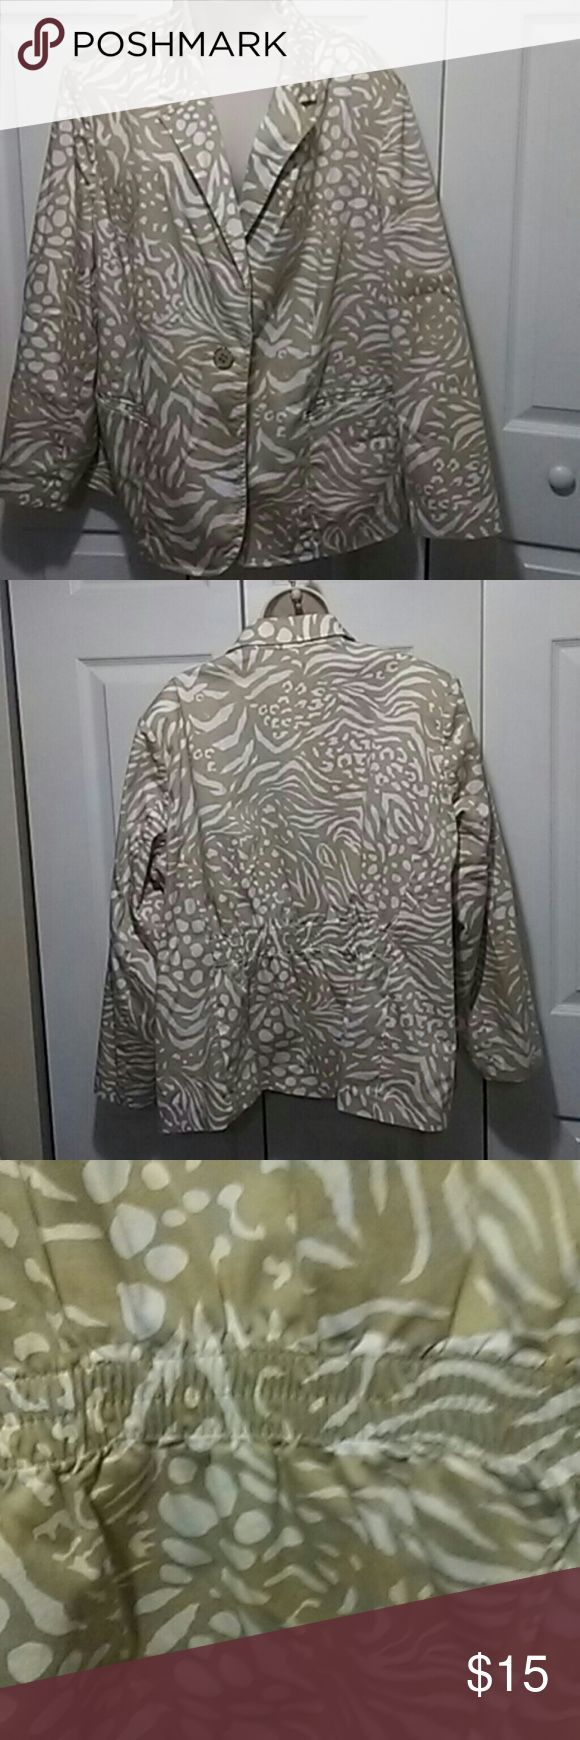 Susan Graver Tan and Cream Jacket Susan Graver Tan and Cream Jacket Fully Lined Susan Graver Jackets & Coats